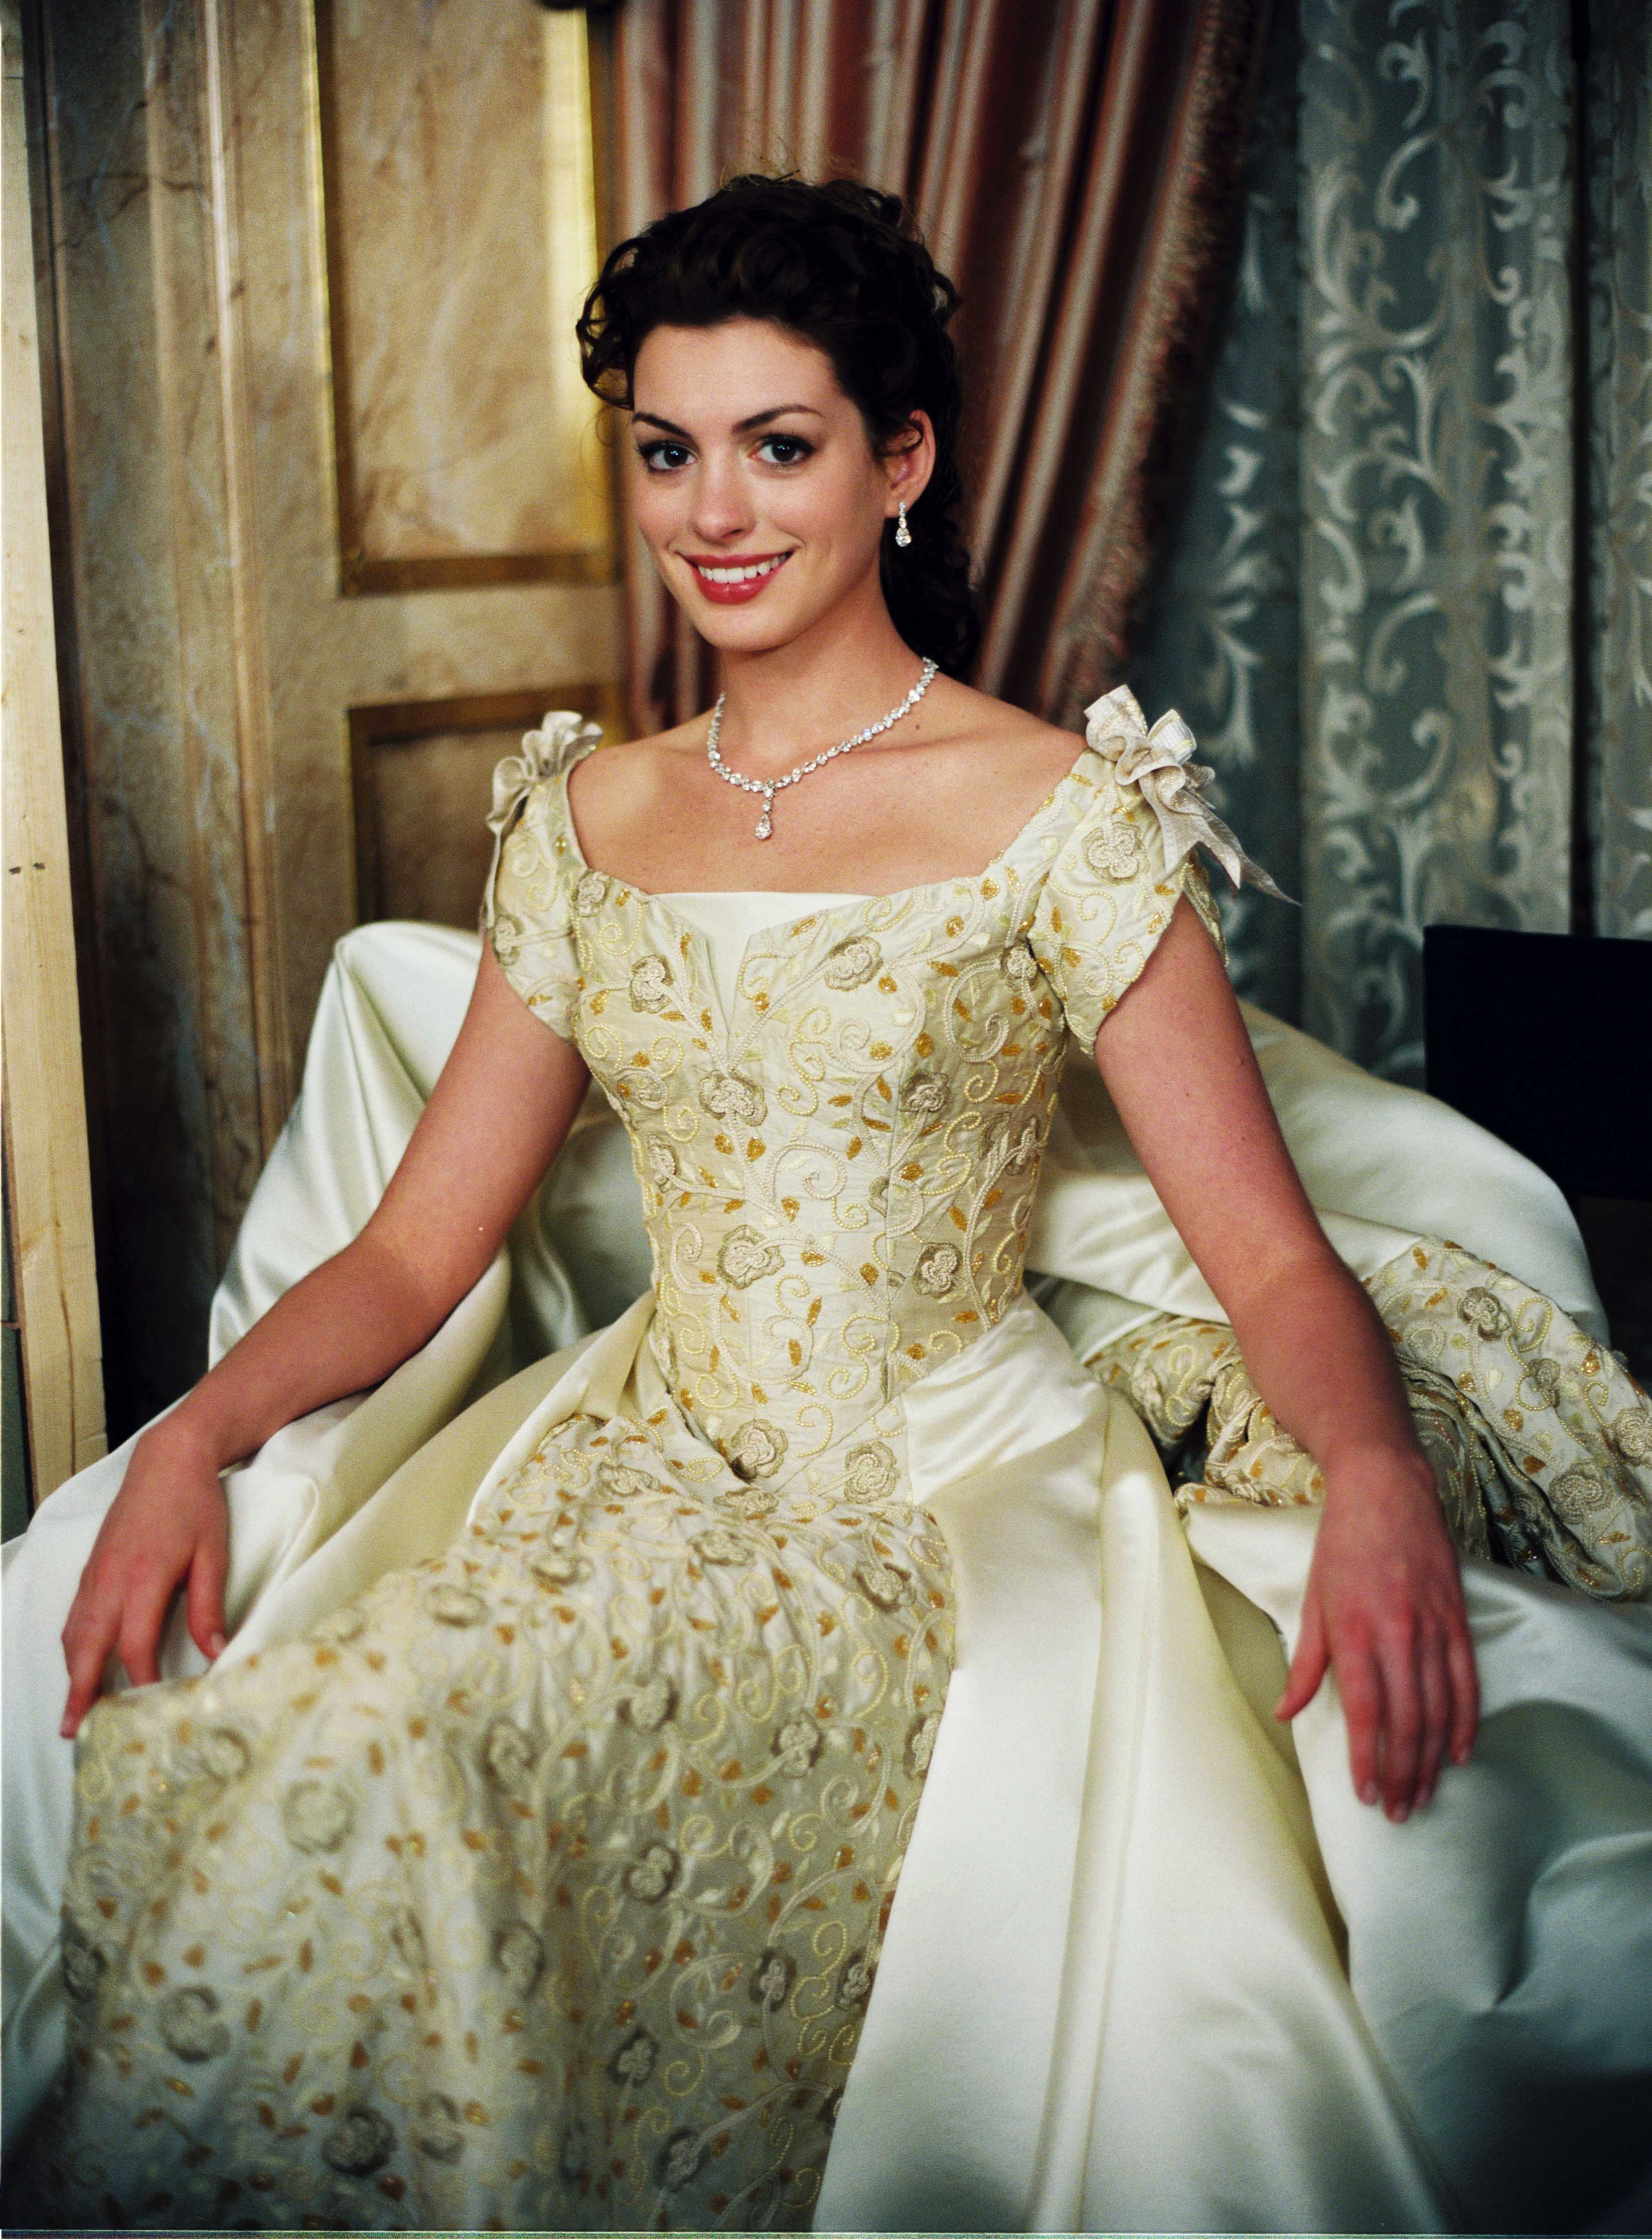 The Princess Diaries 2 Images Movie Hd Wallpaper And